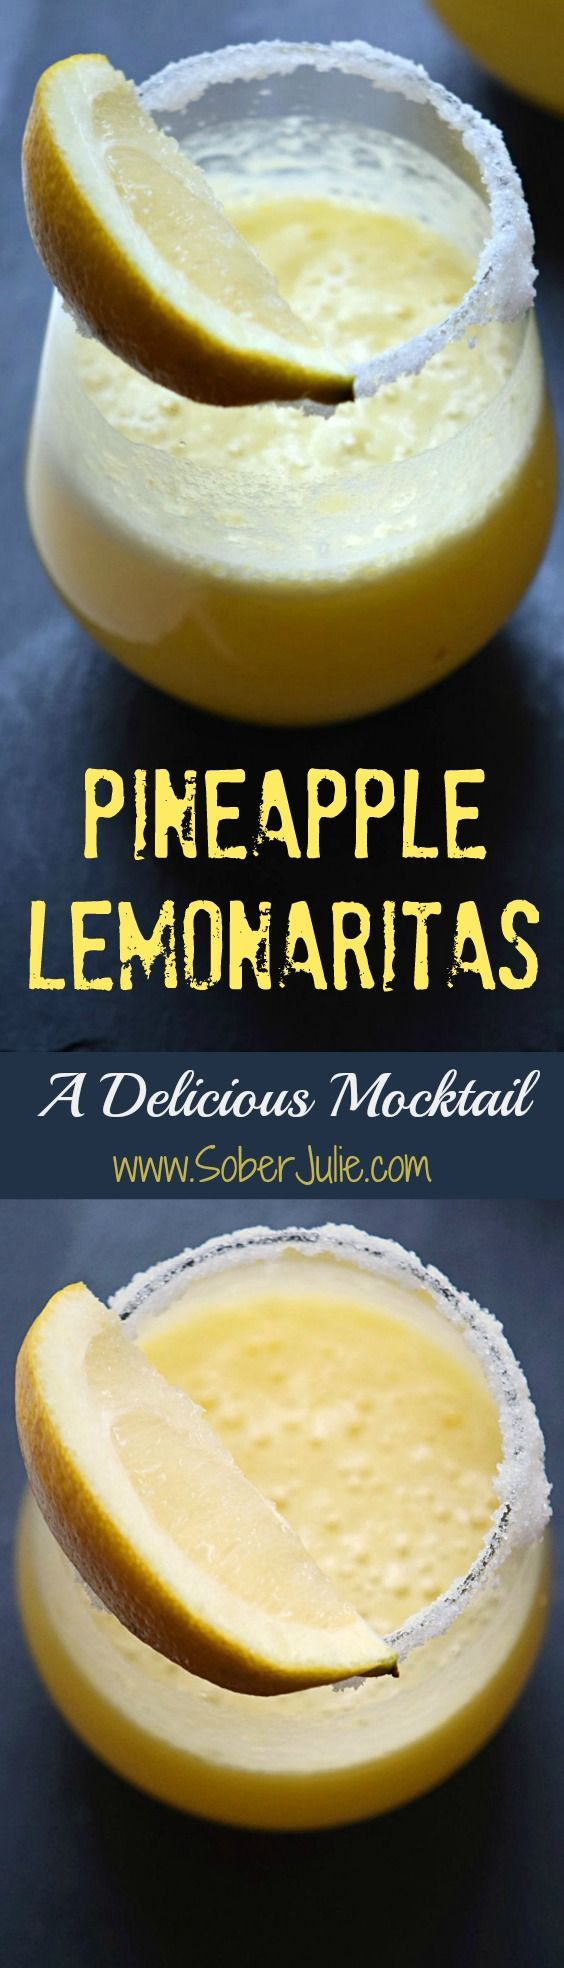 a lovely non-alcoholic drink recipe with pineapple and lemon